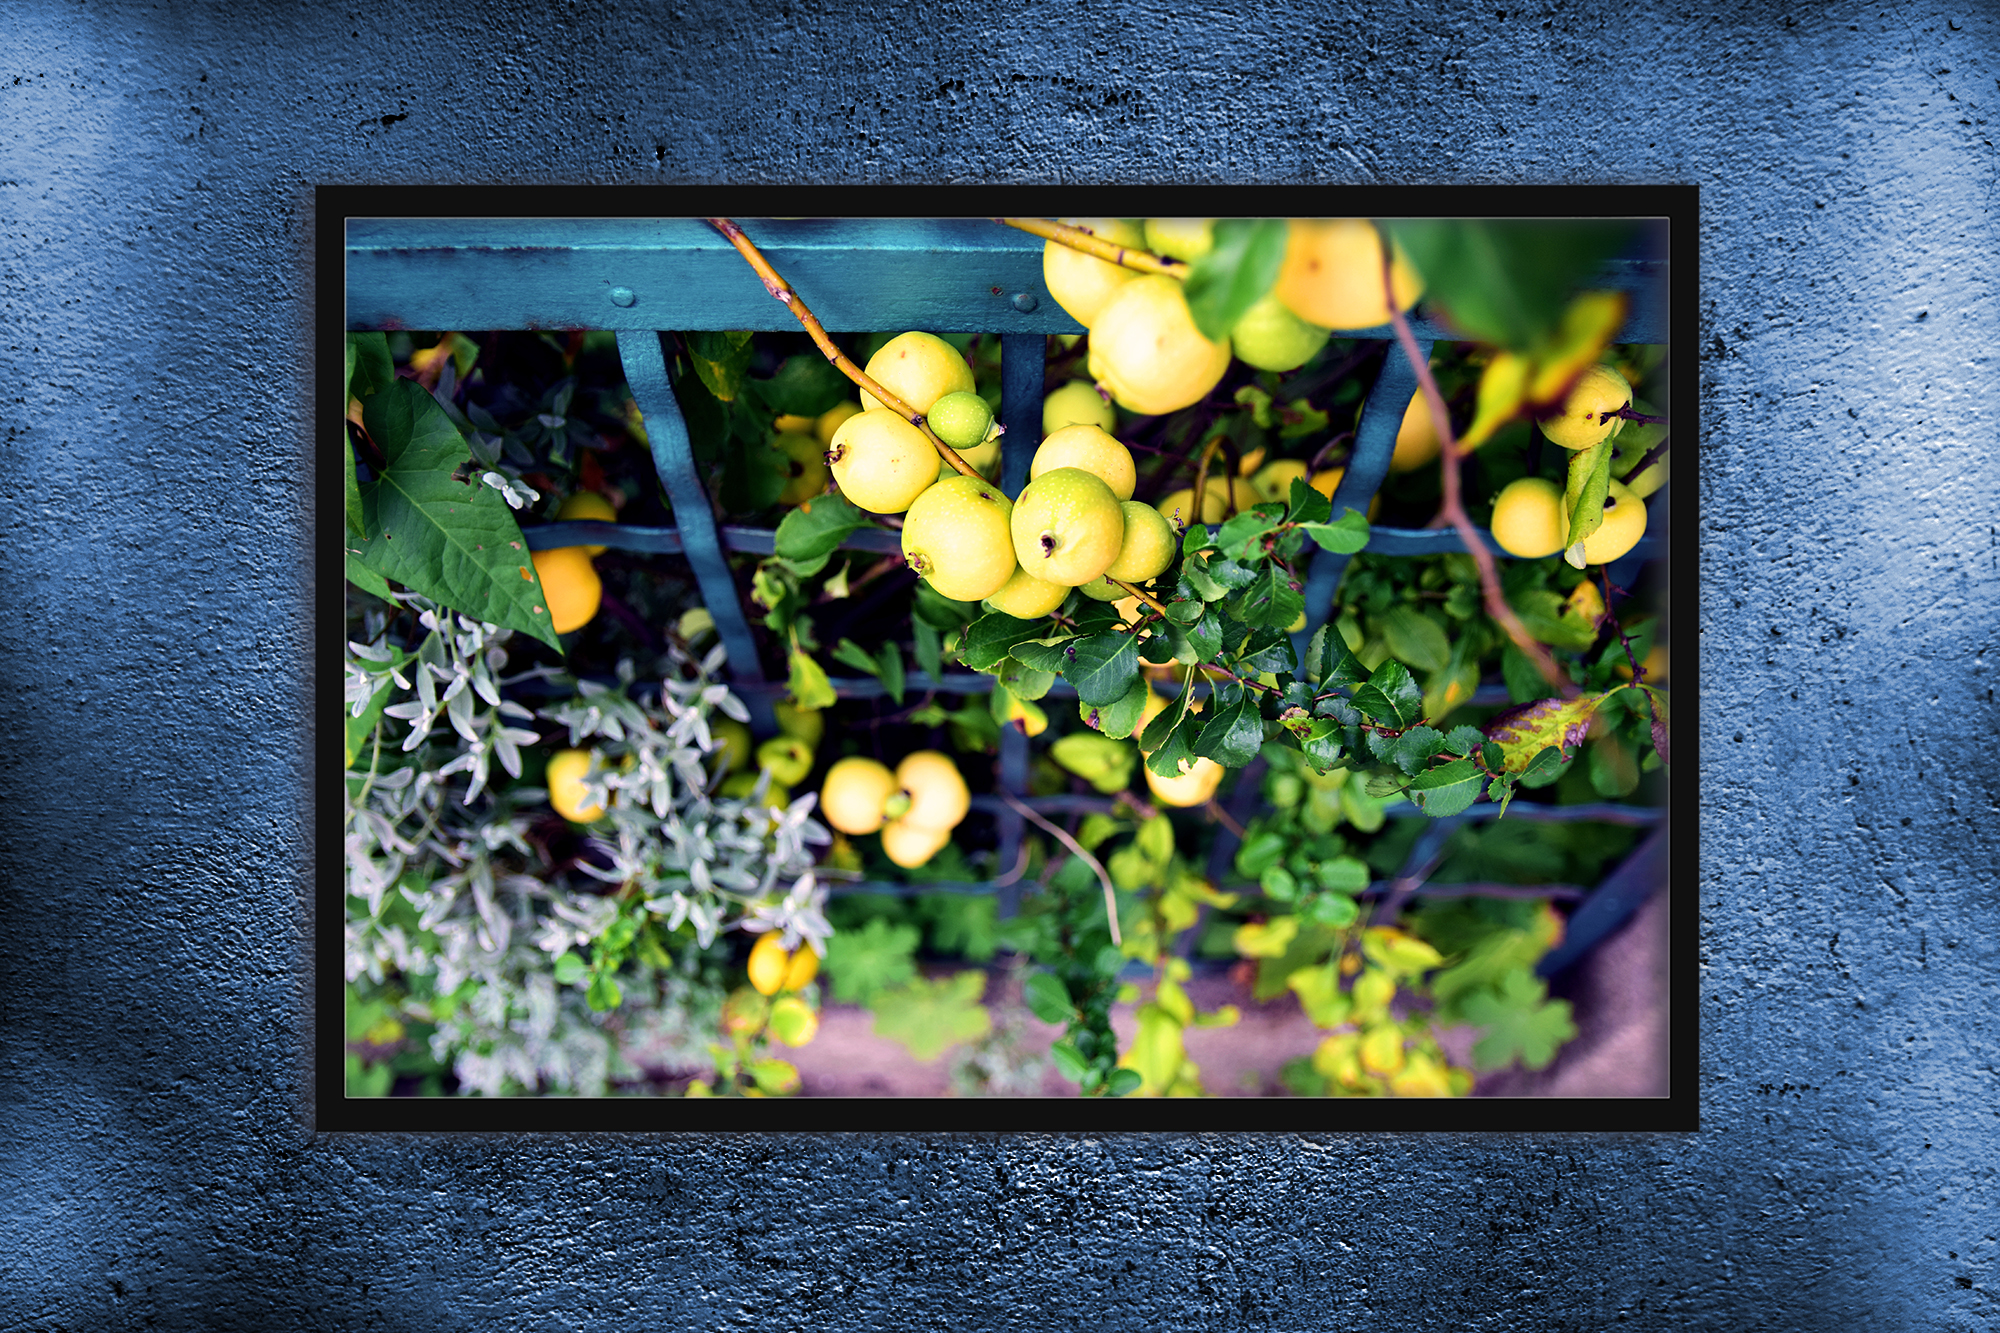 Nature photo, floral photo, flower photo, summer example image 4